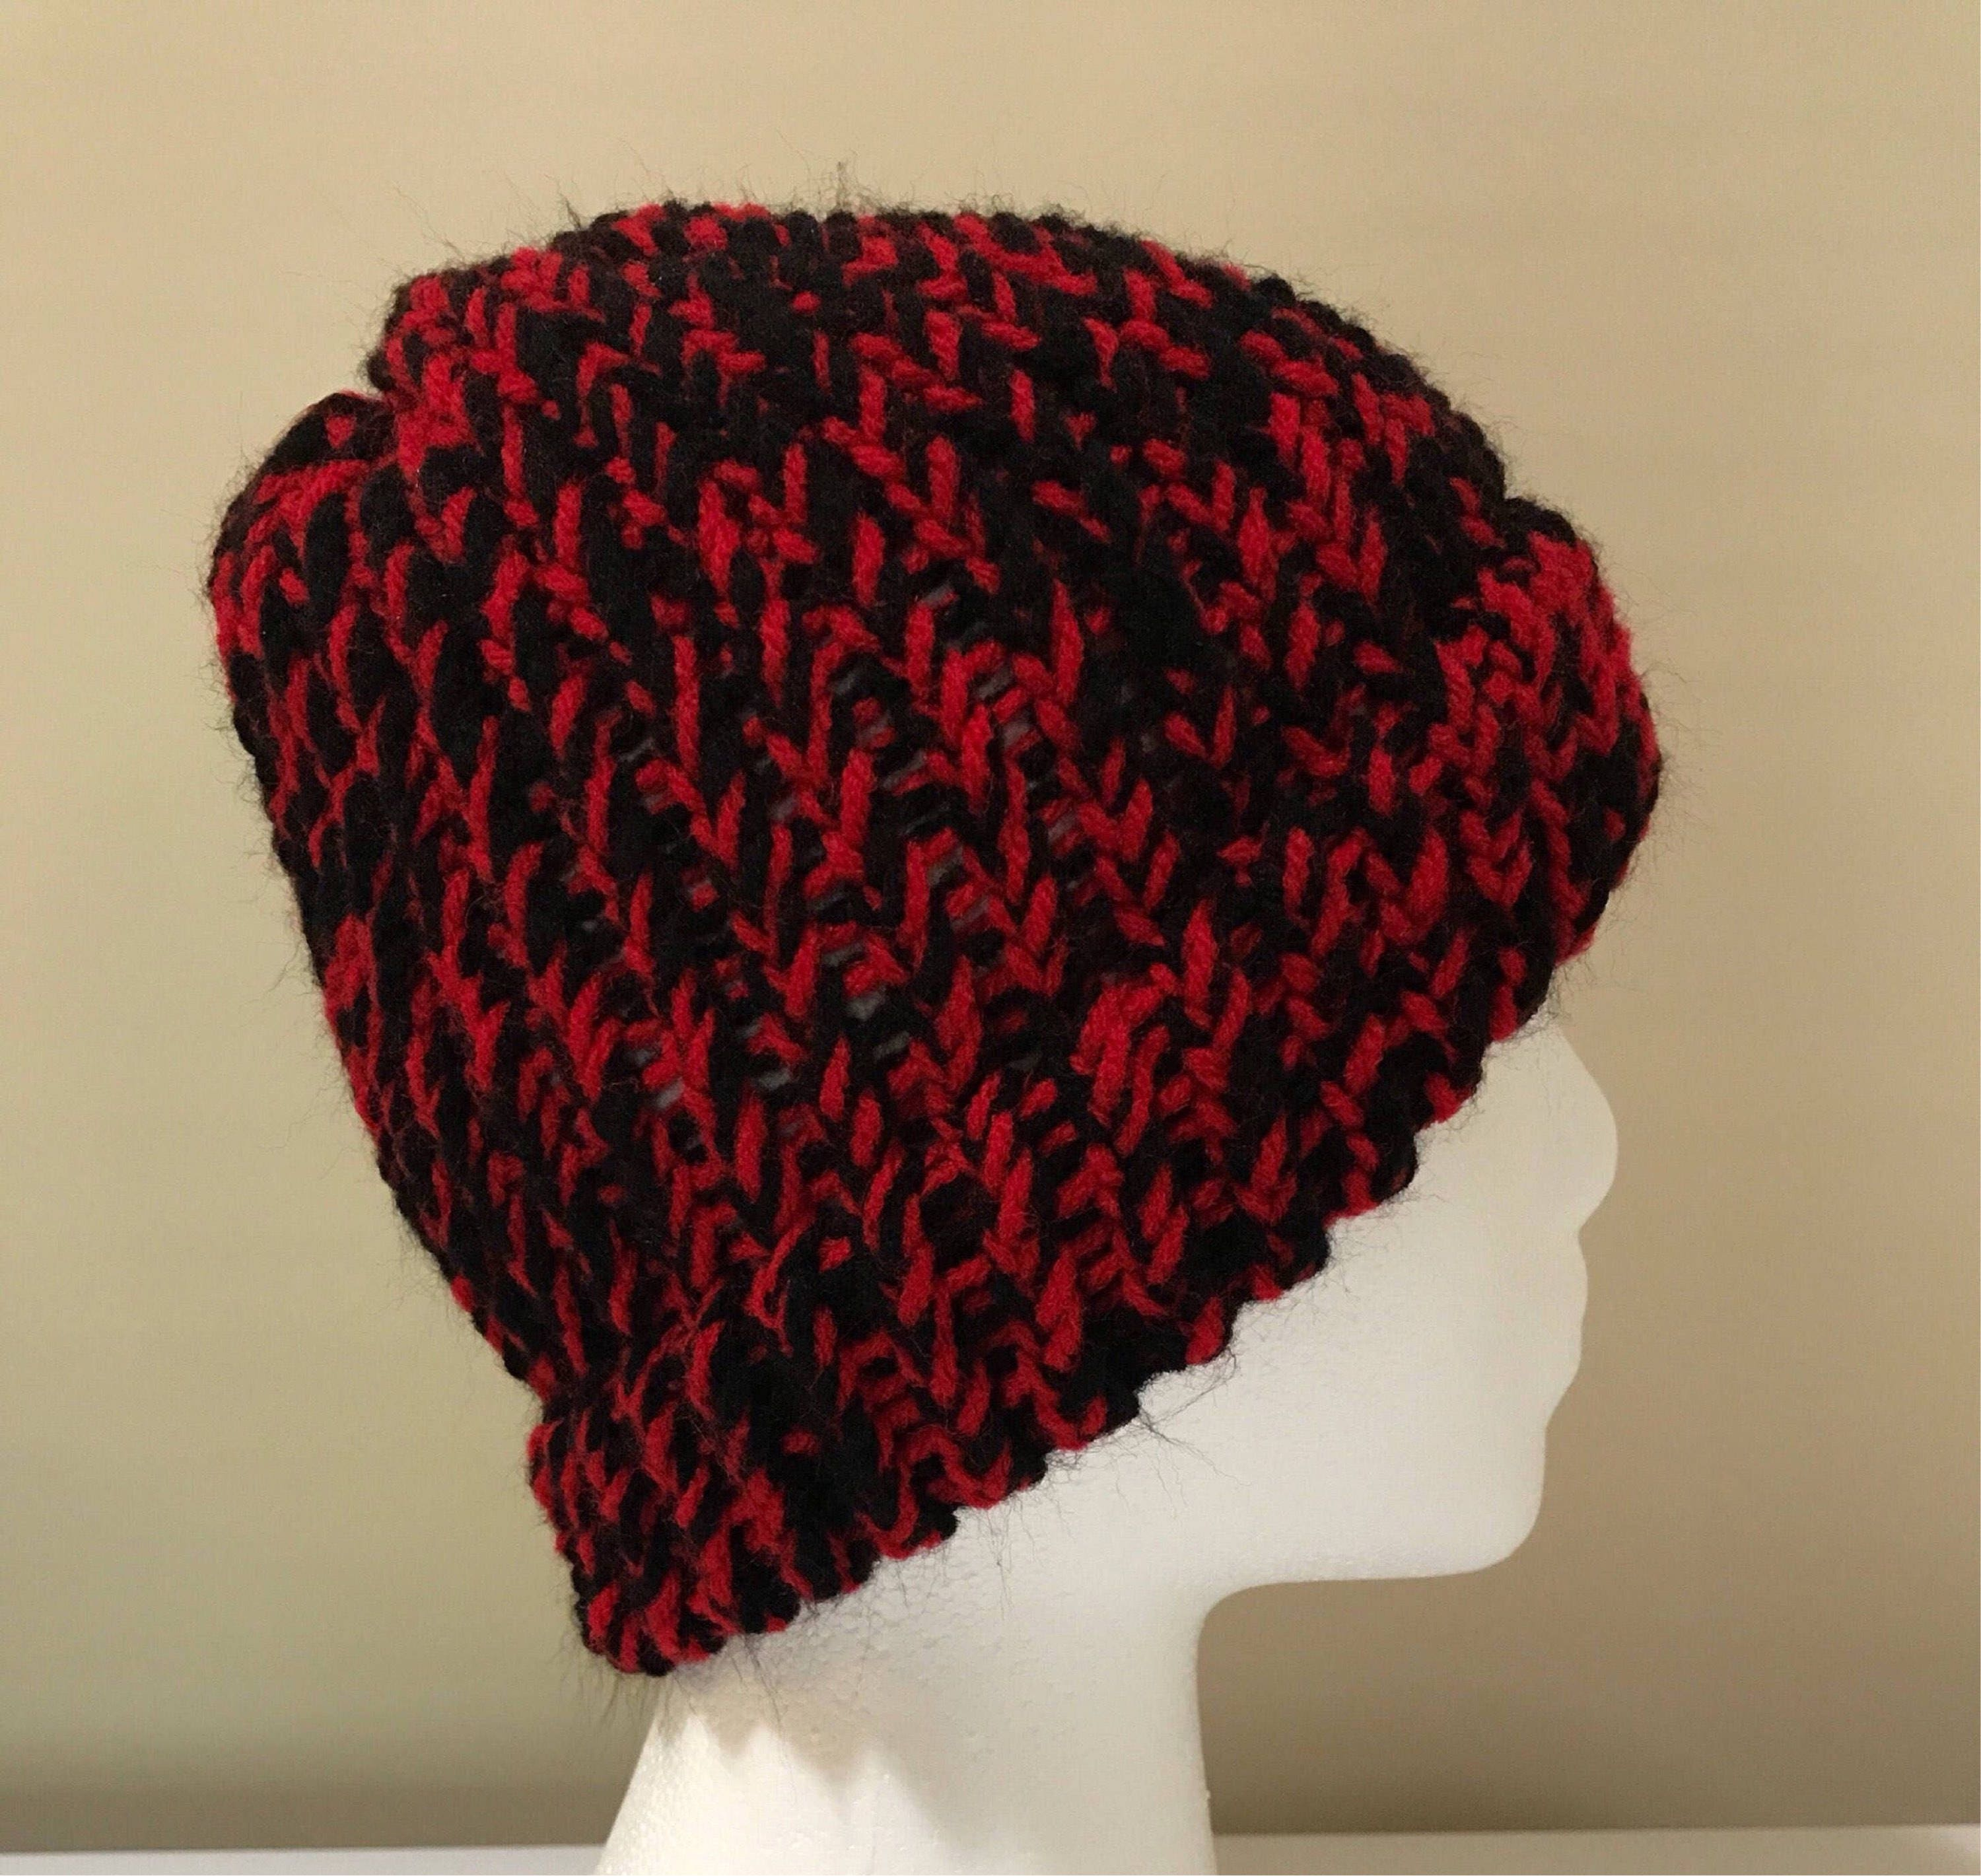 d7bf1dd1733 Loom Knitted Hat - Black   Red